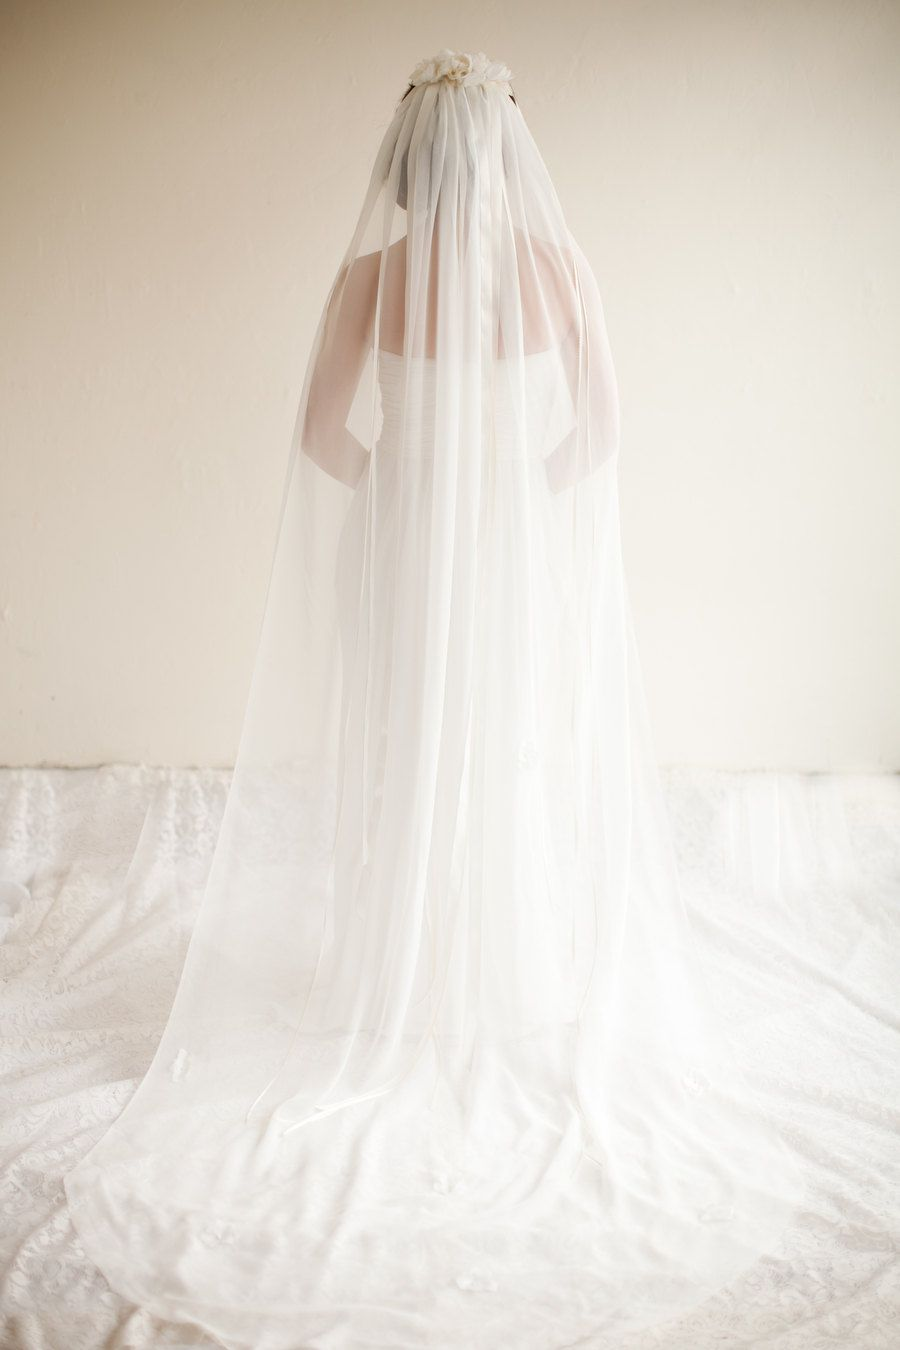 Long veil wedding dresses  Silk Chiffon Cathedral Veil with Ribbons Cathedral Veil Silk